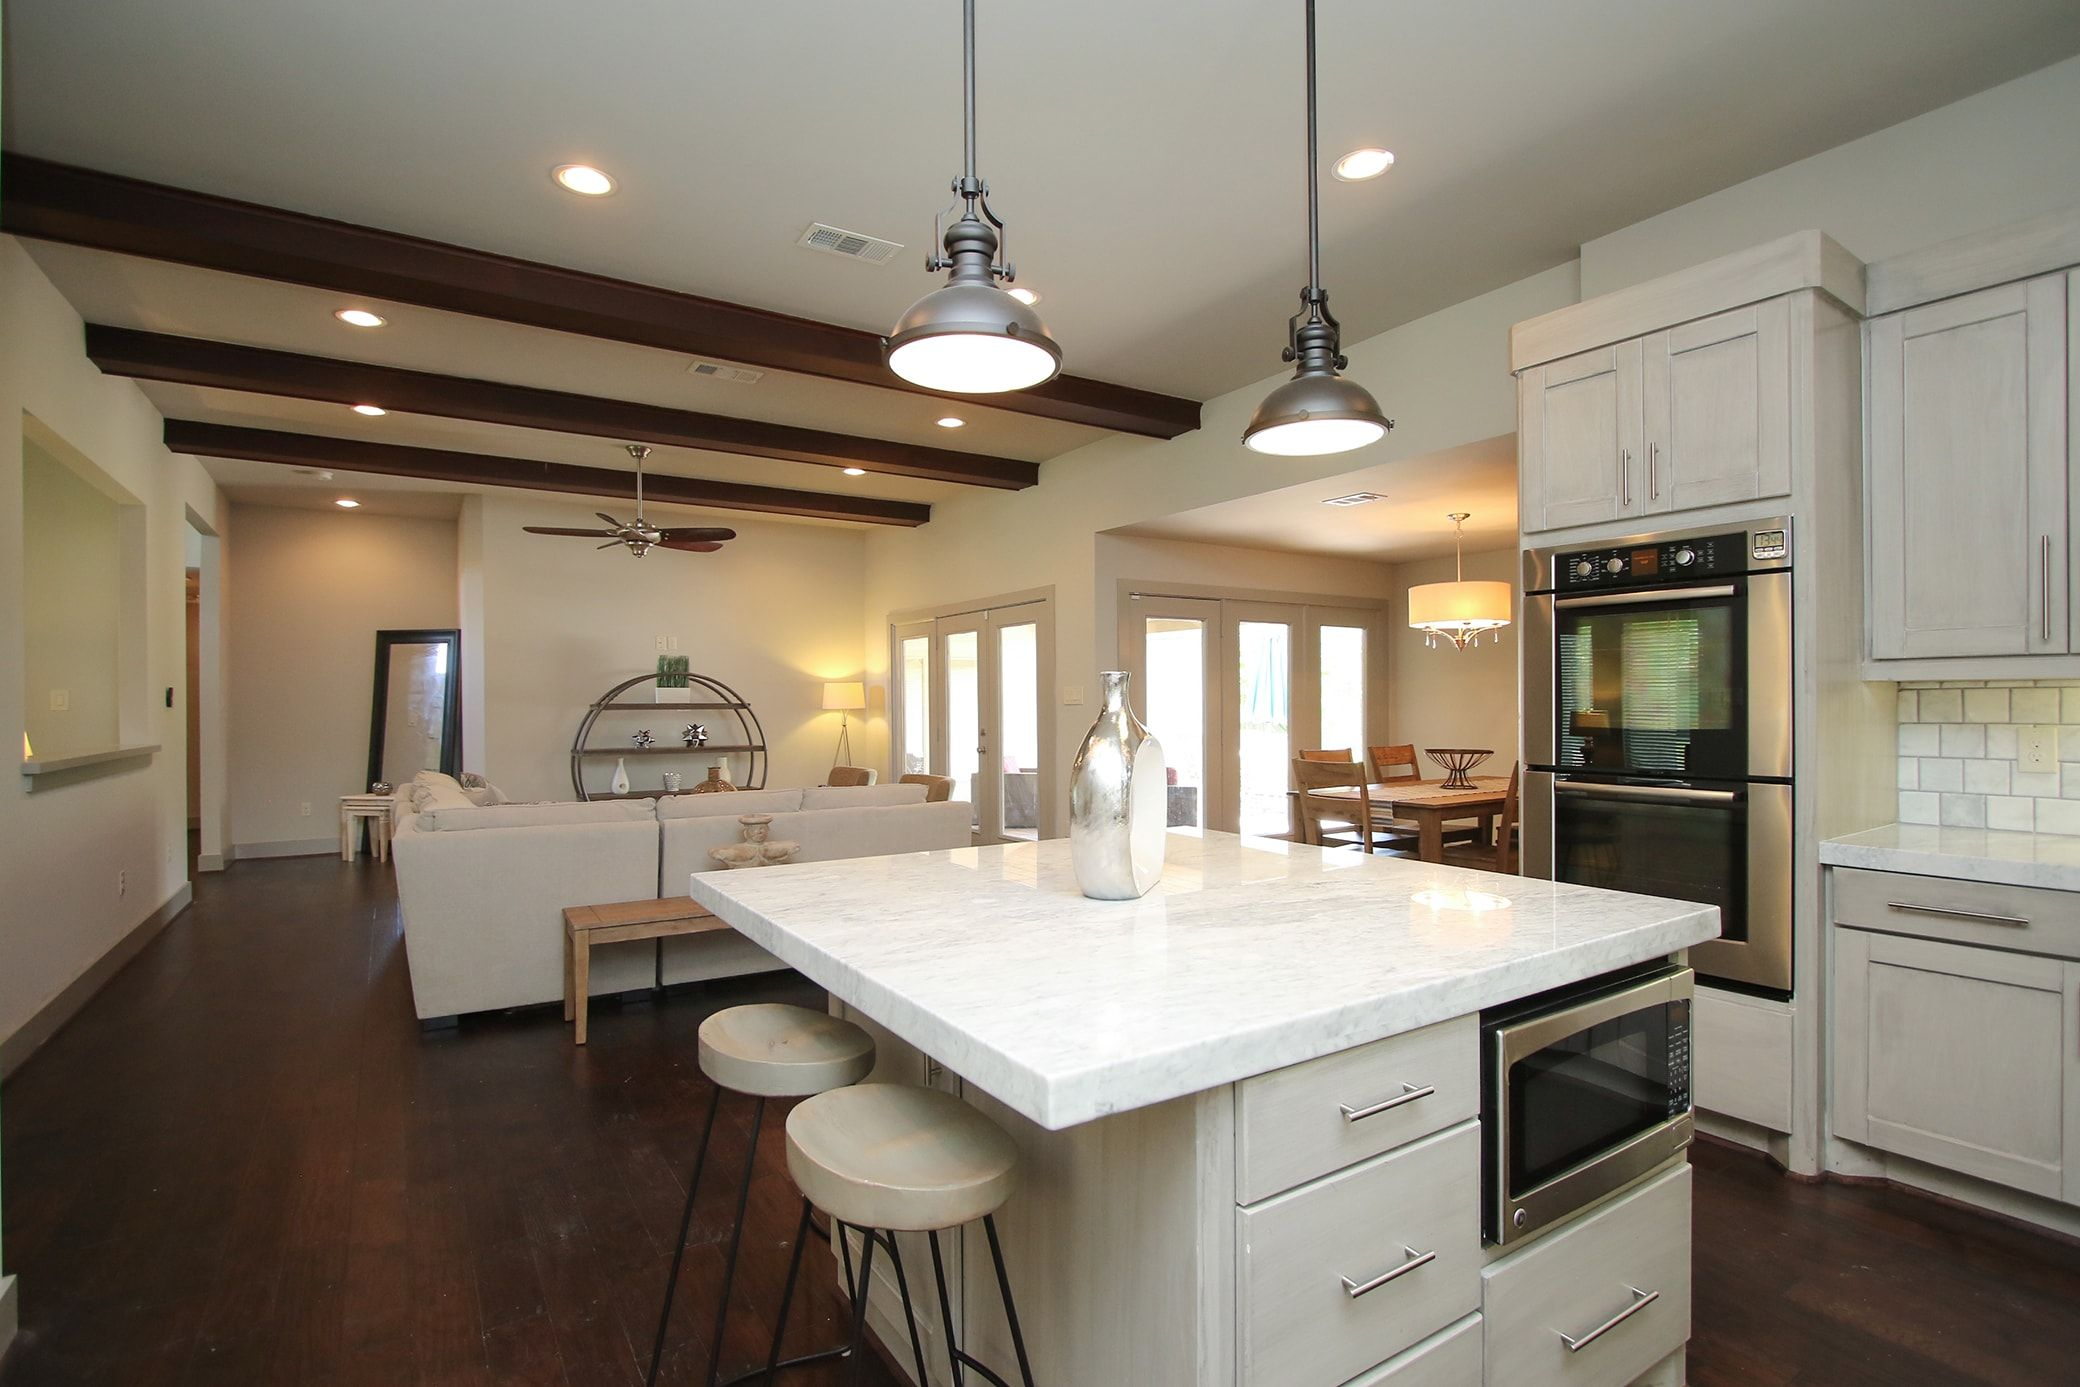 House rental image by luxurway on Houston Short Term